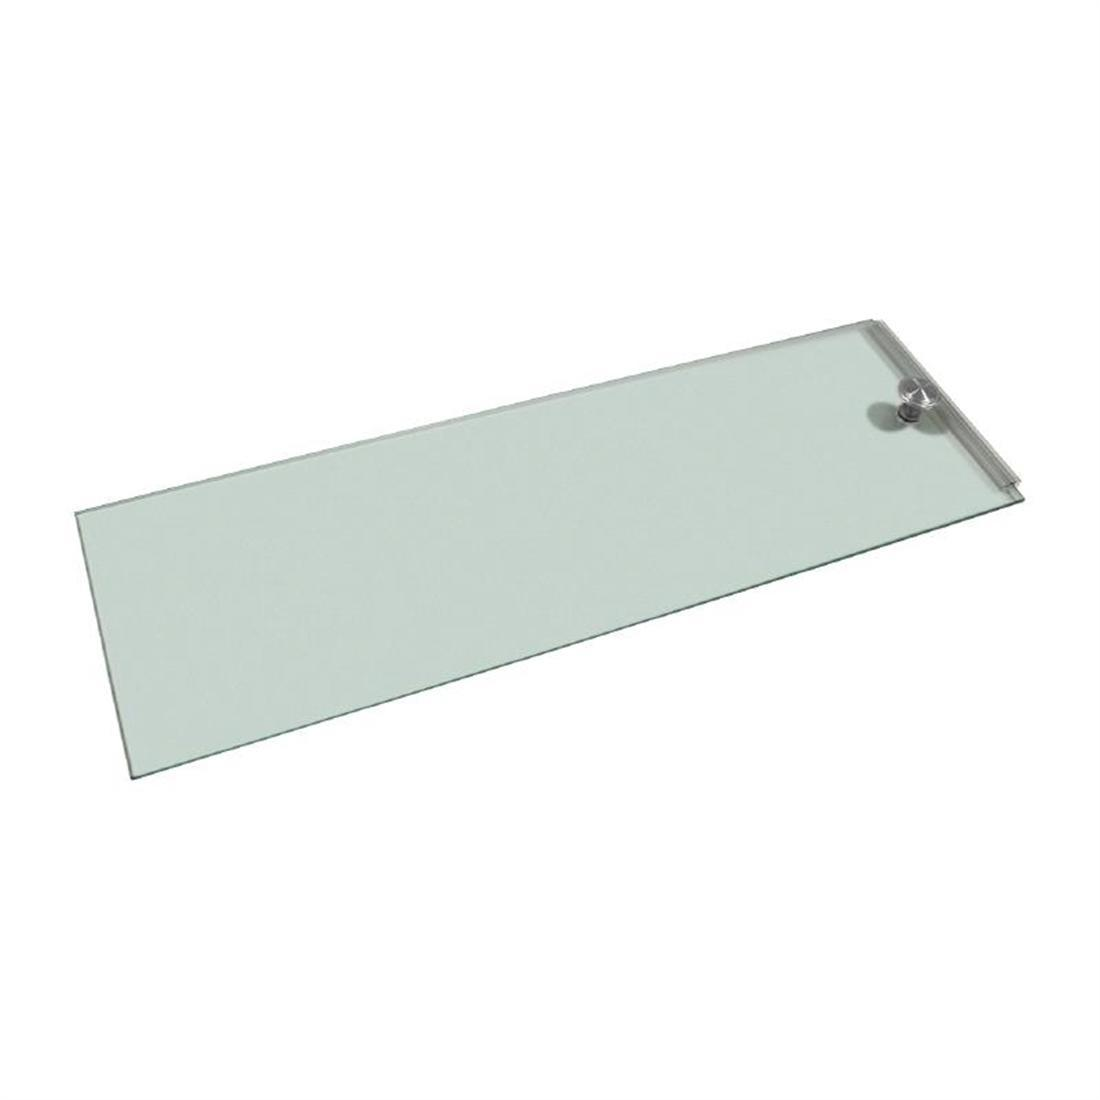 Buffalo Glass Door Assembly Fits CW148 - AJ117